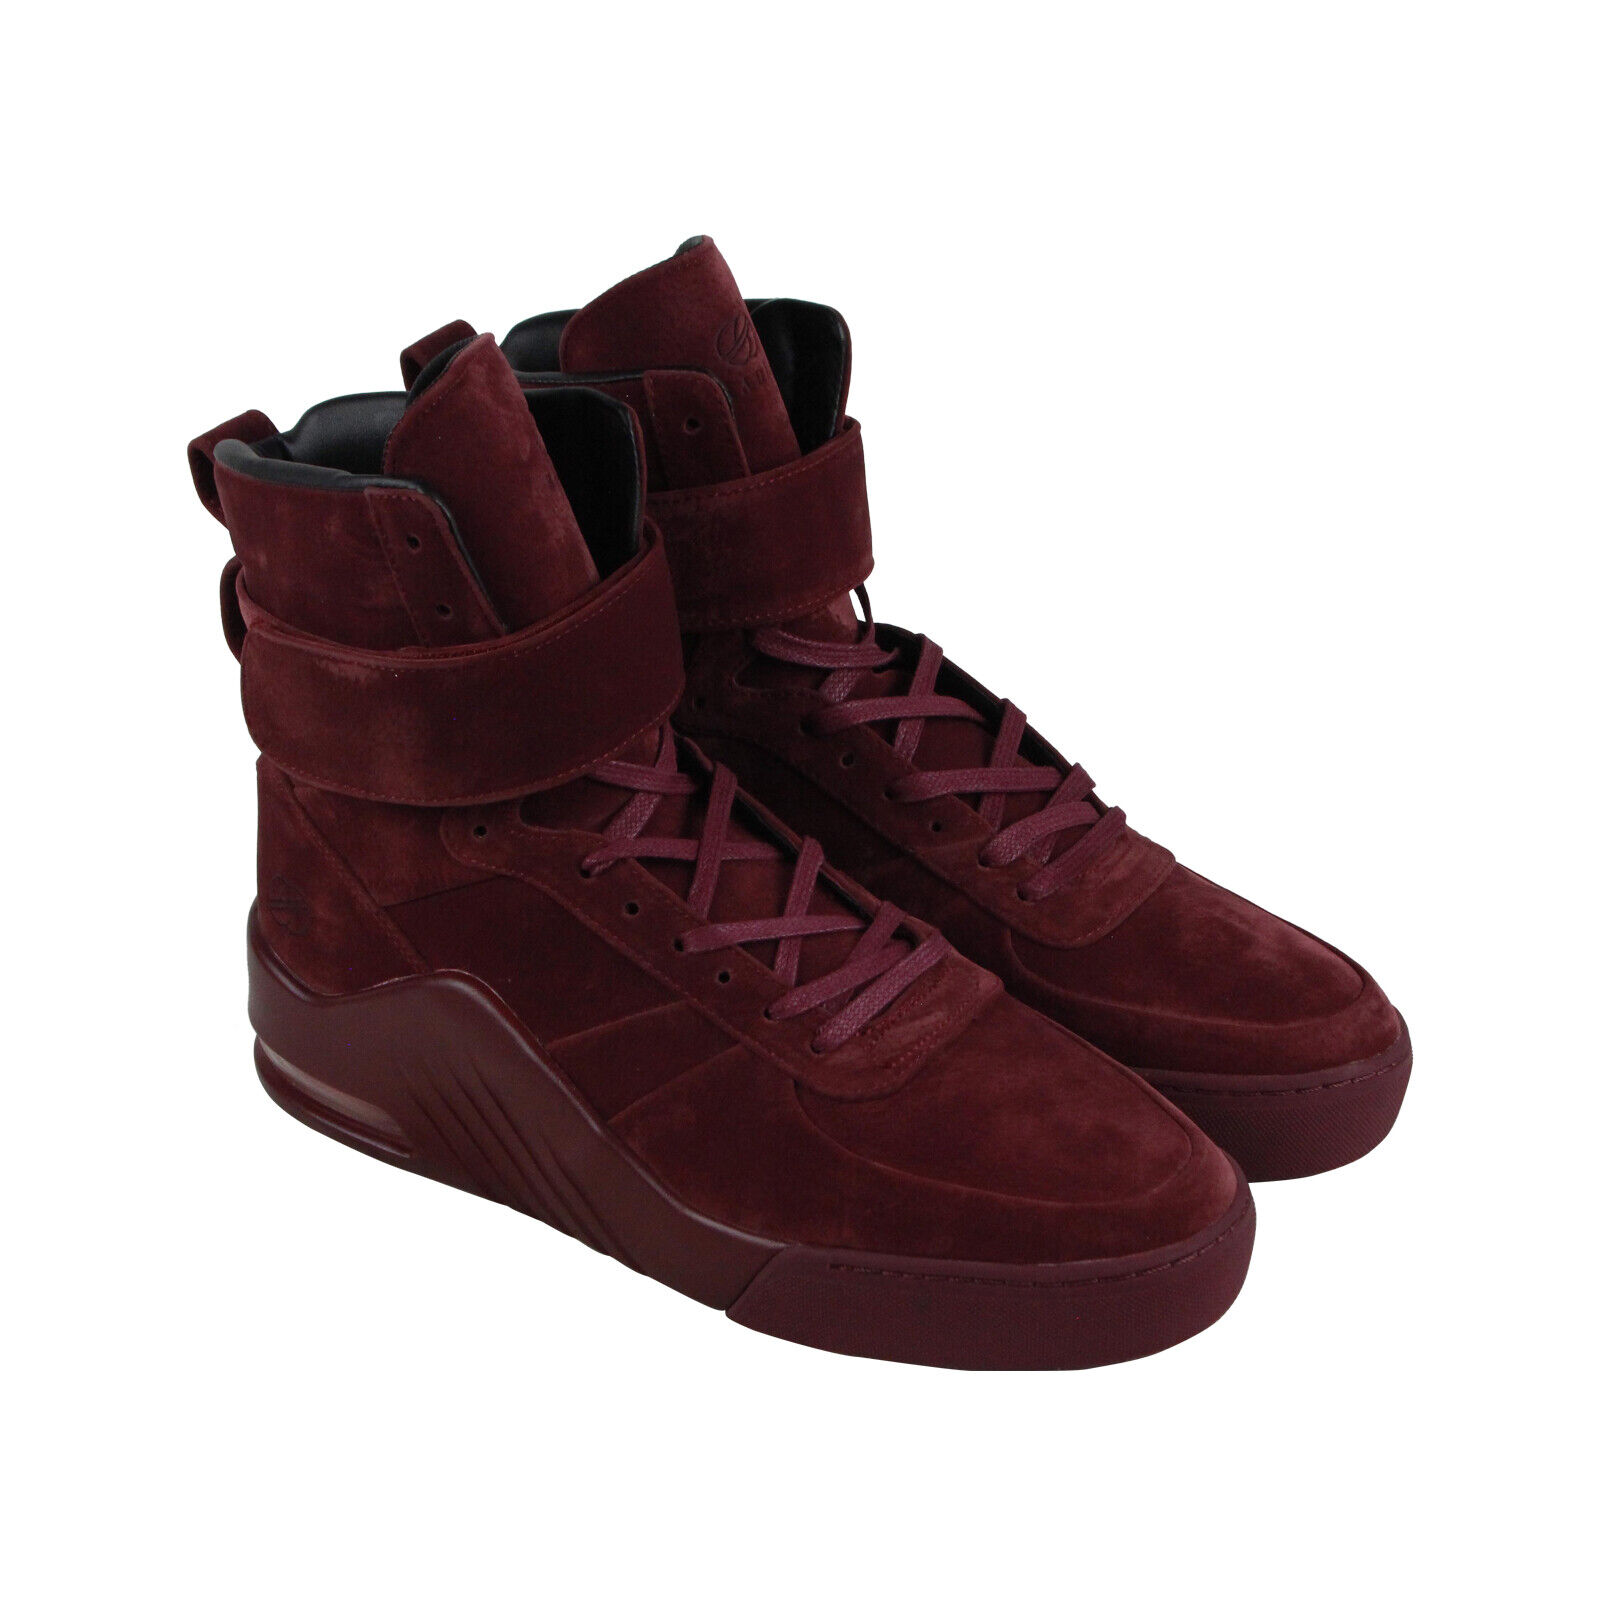 Radii Apex FM1098 Mens Red Suede Casual Lace Up High Top Sneakers Shoes